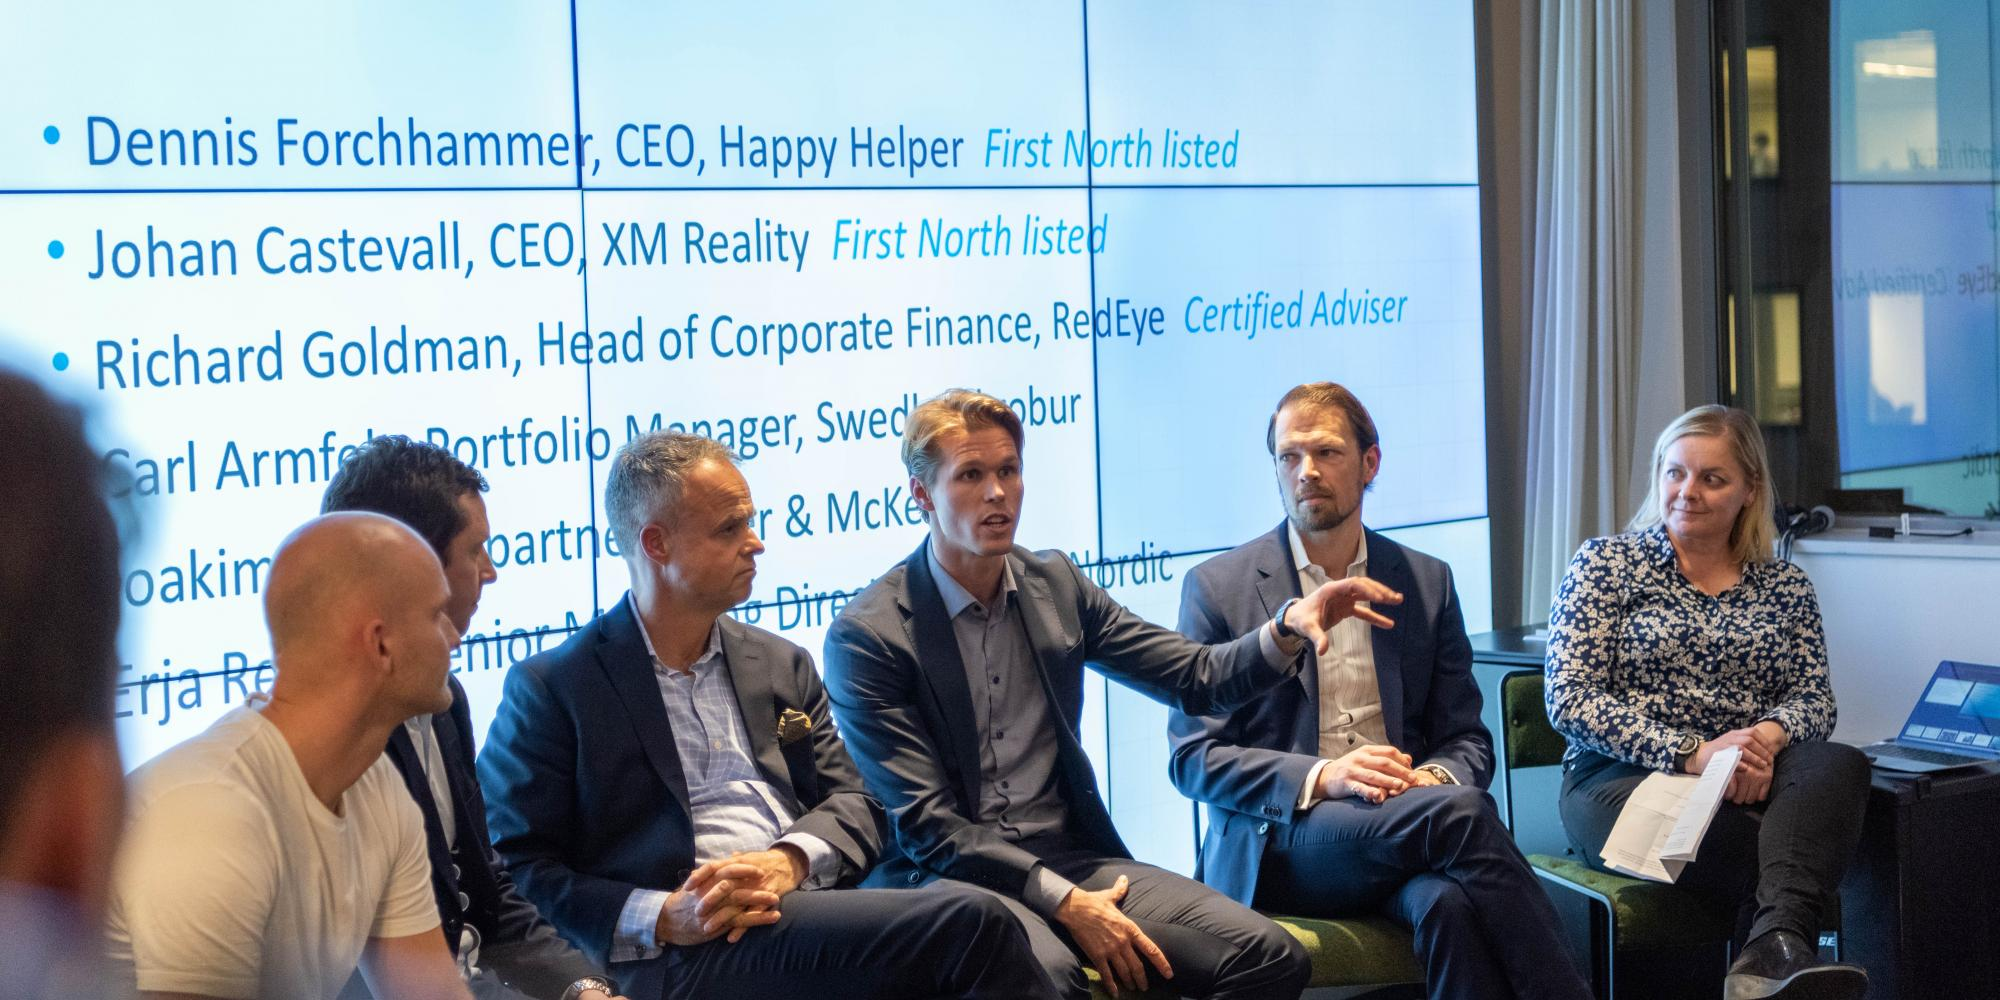 The panel of the Nordic IPO Clinic, moderated by Erja Retzén of Nasdaq Nordic (far right).